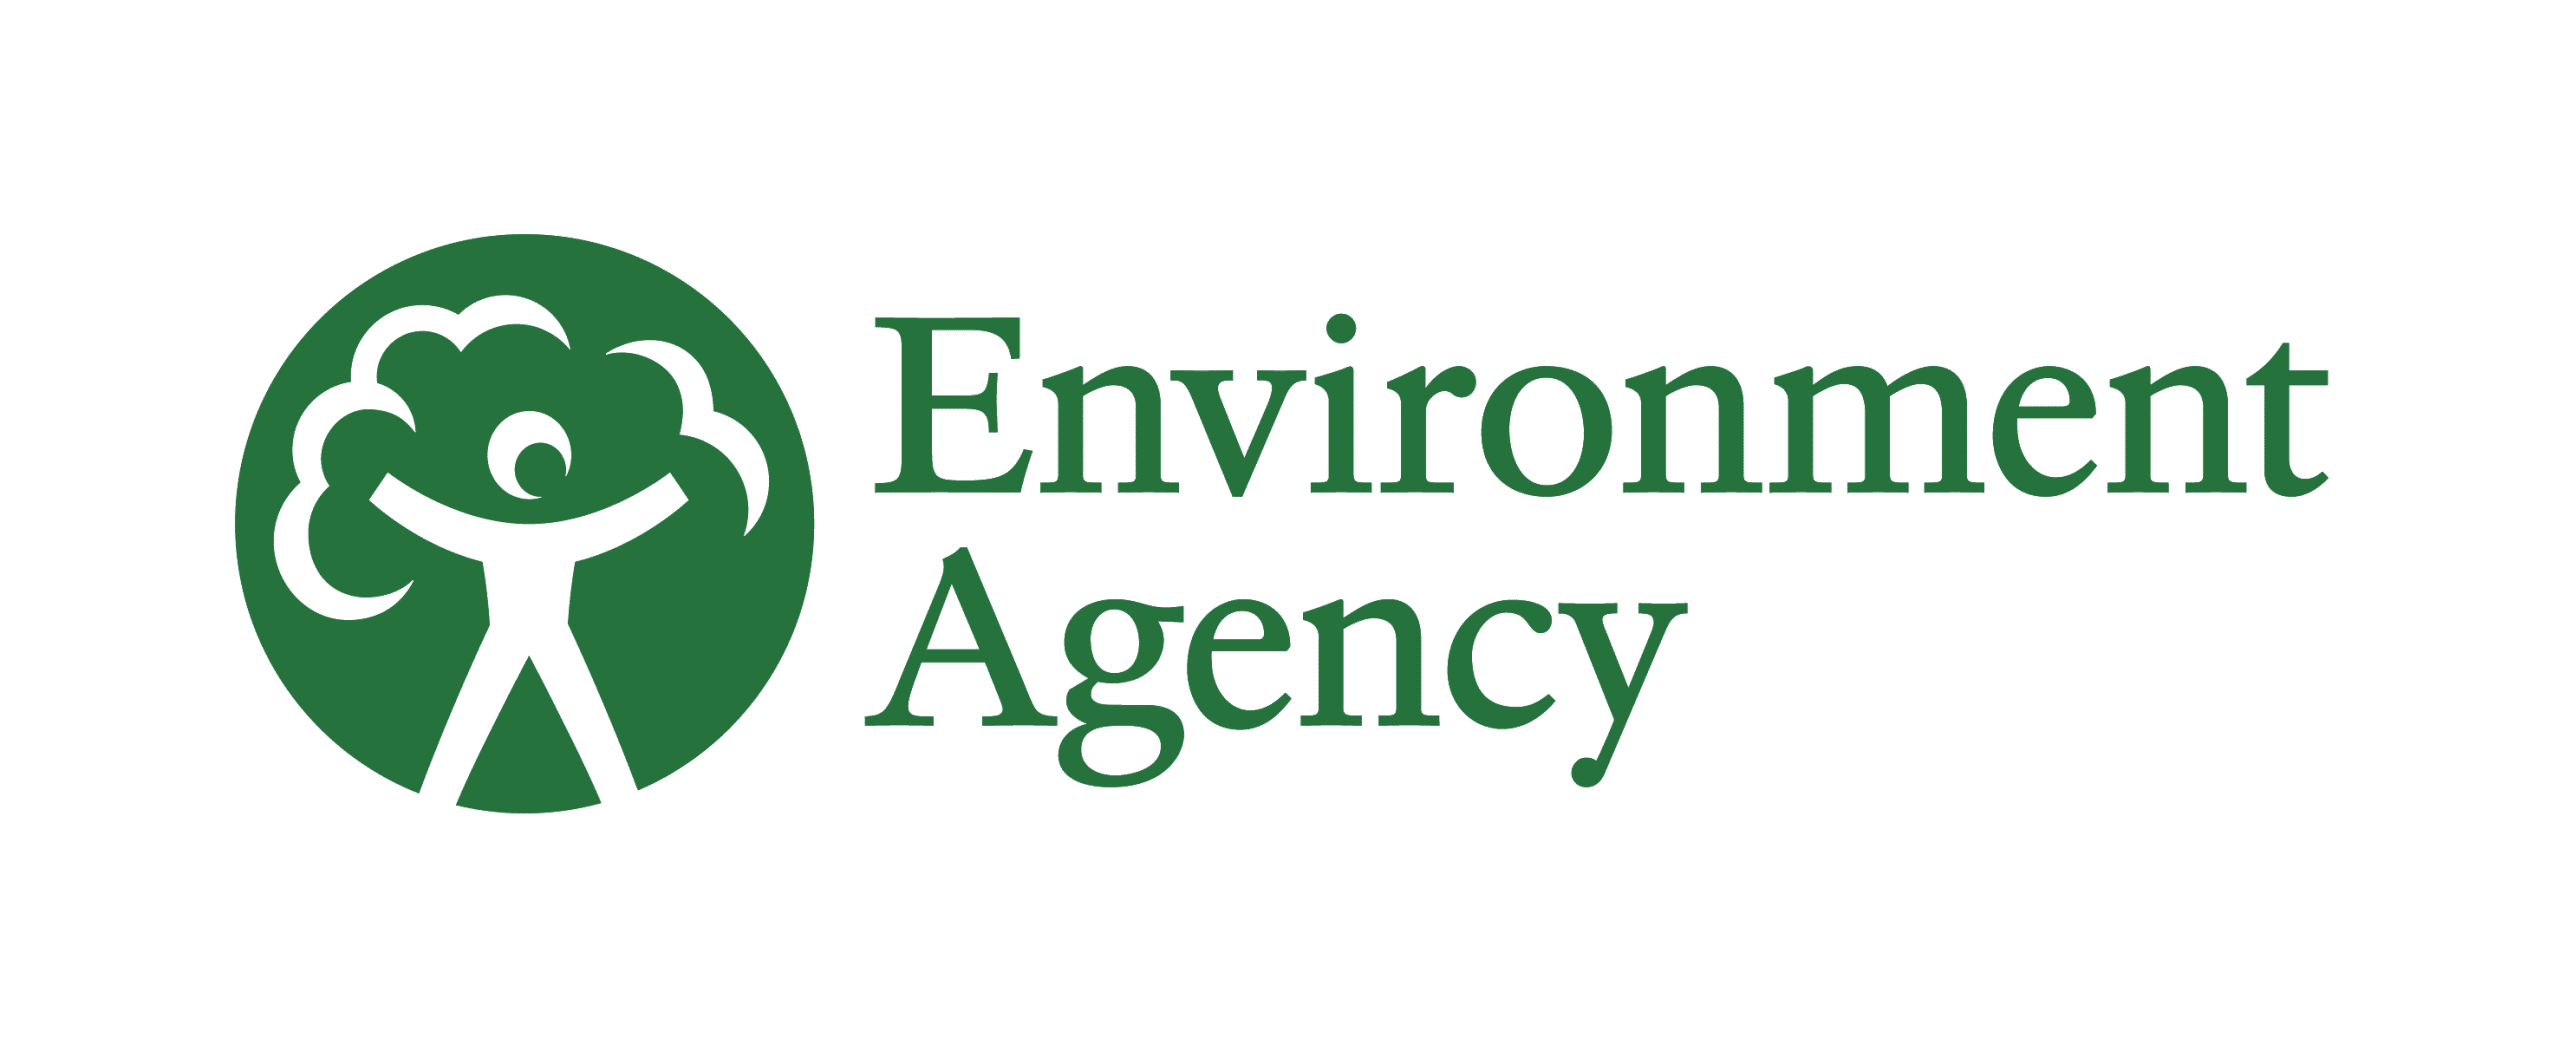 enviroment-agency-logo